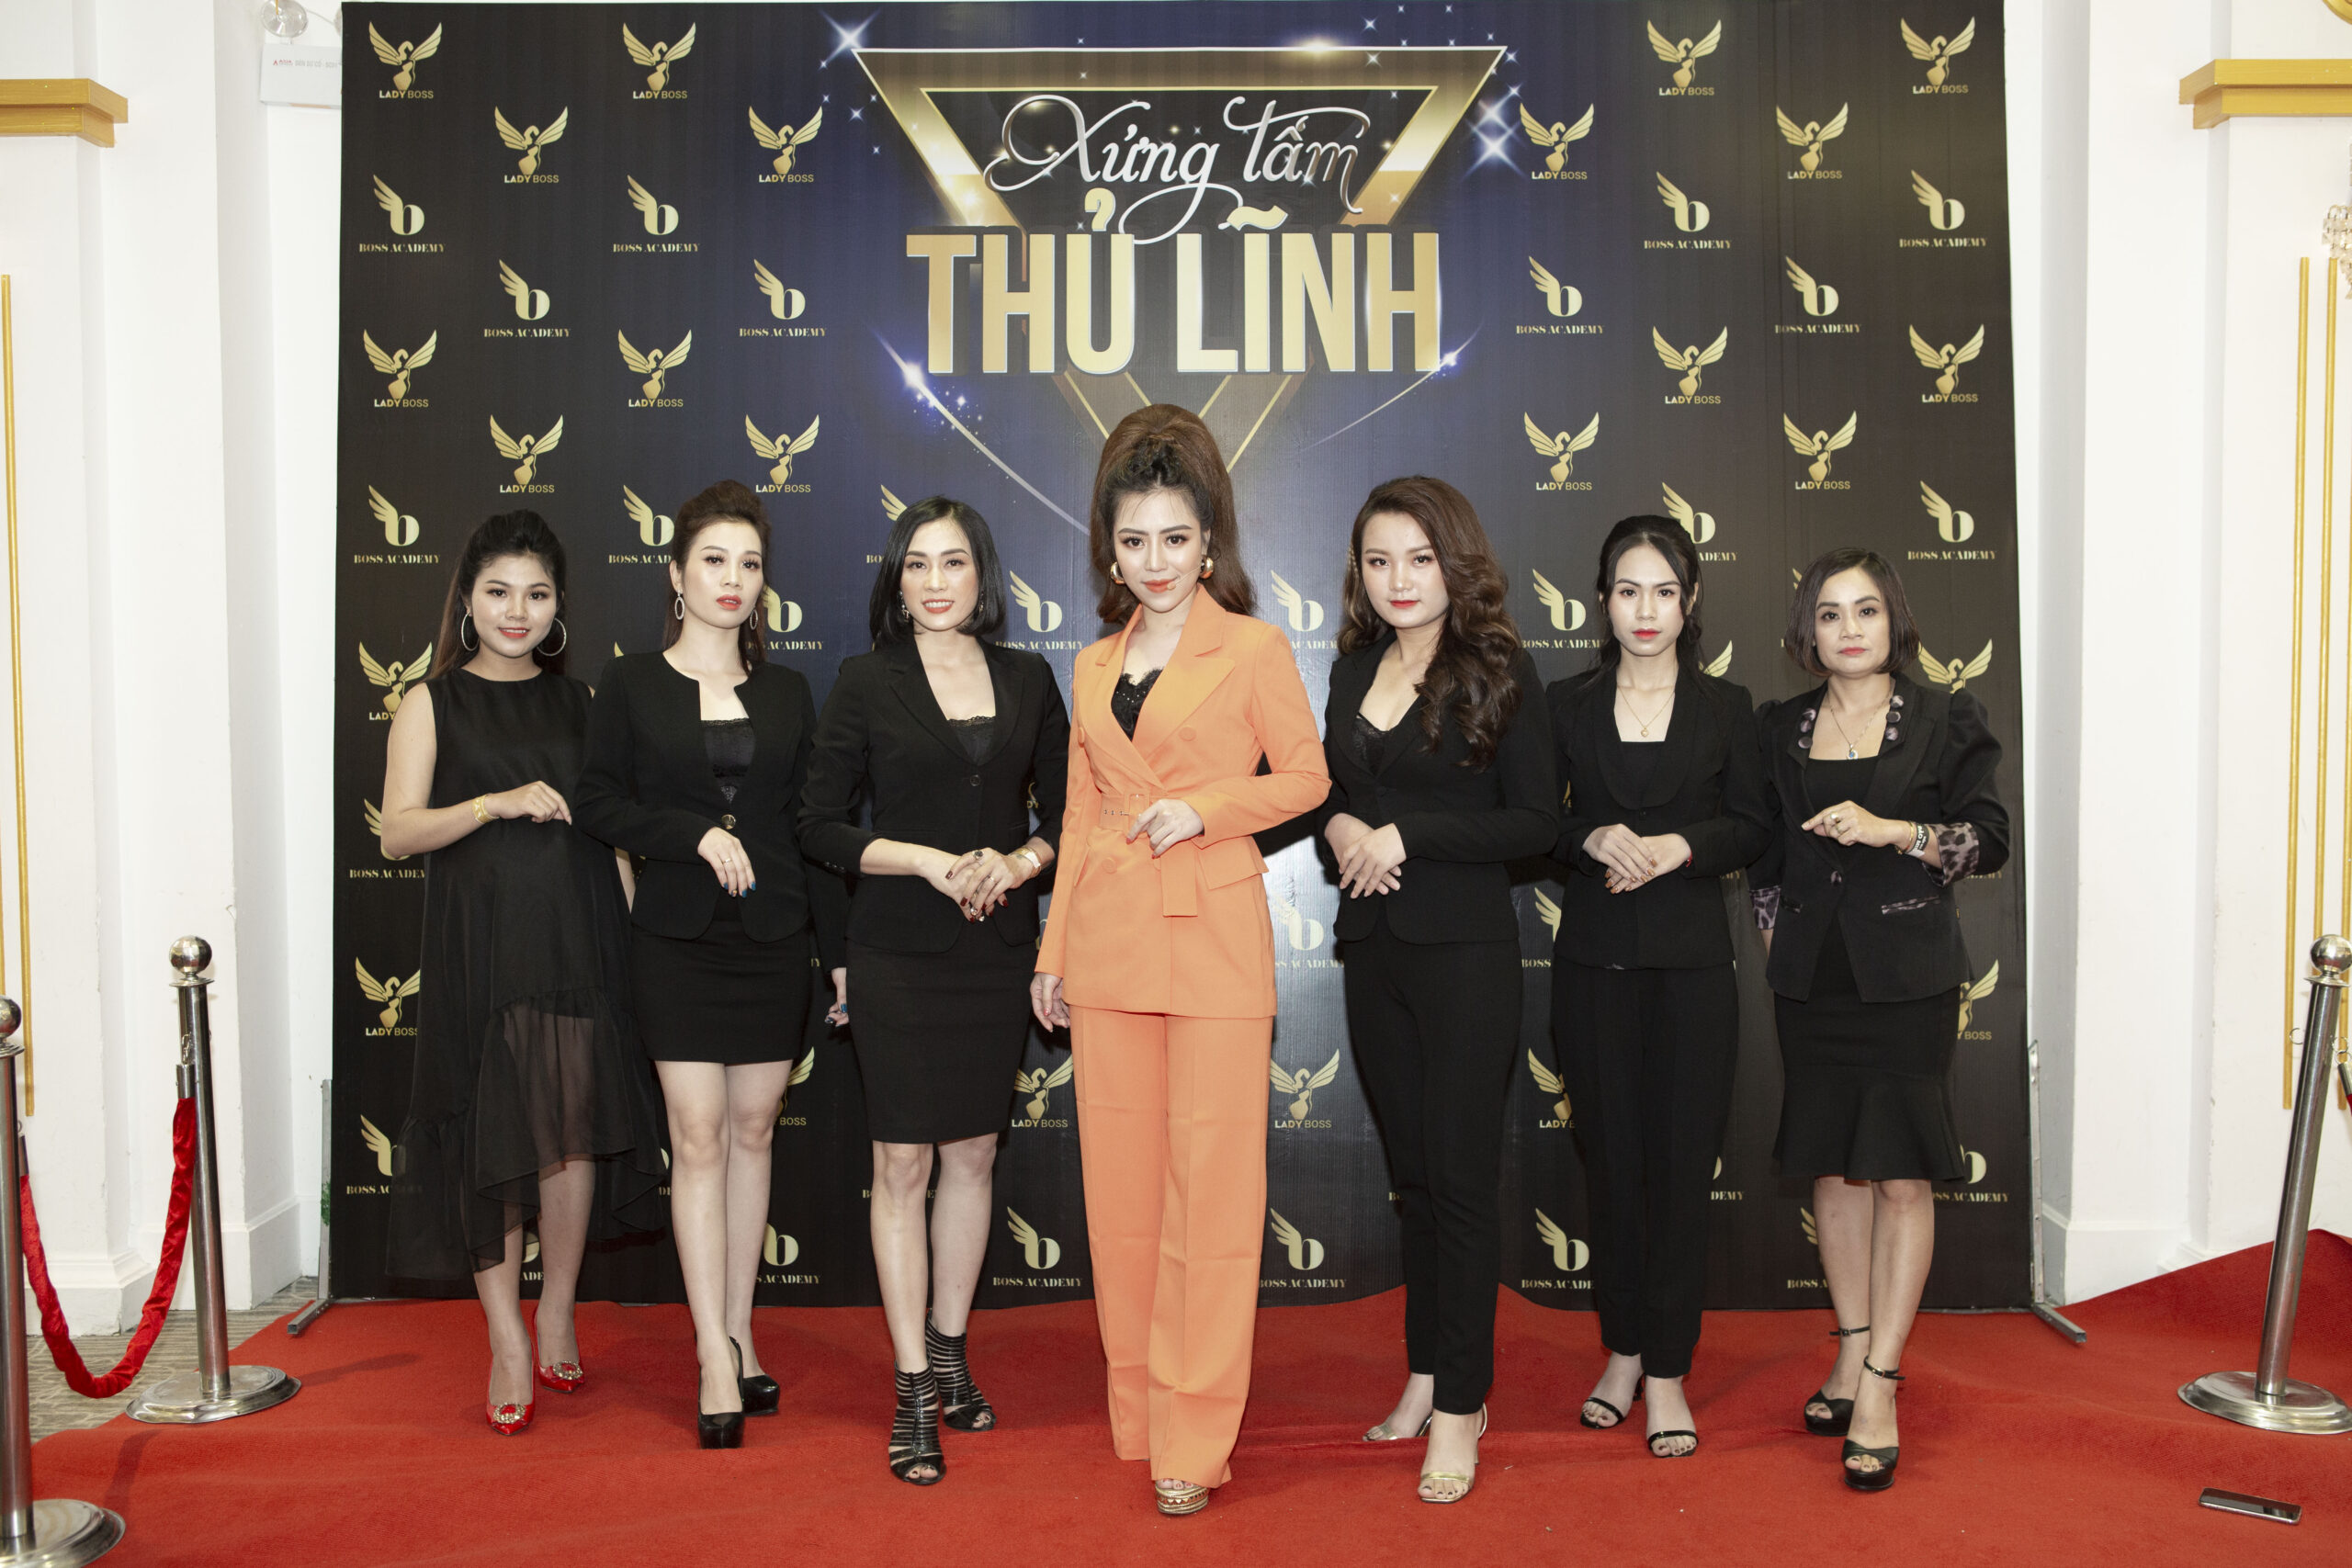 to-chat-tro-thanh-thu-linh-1